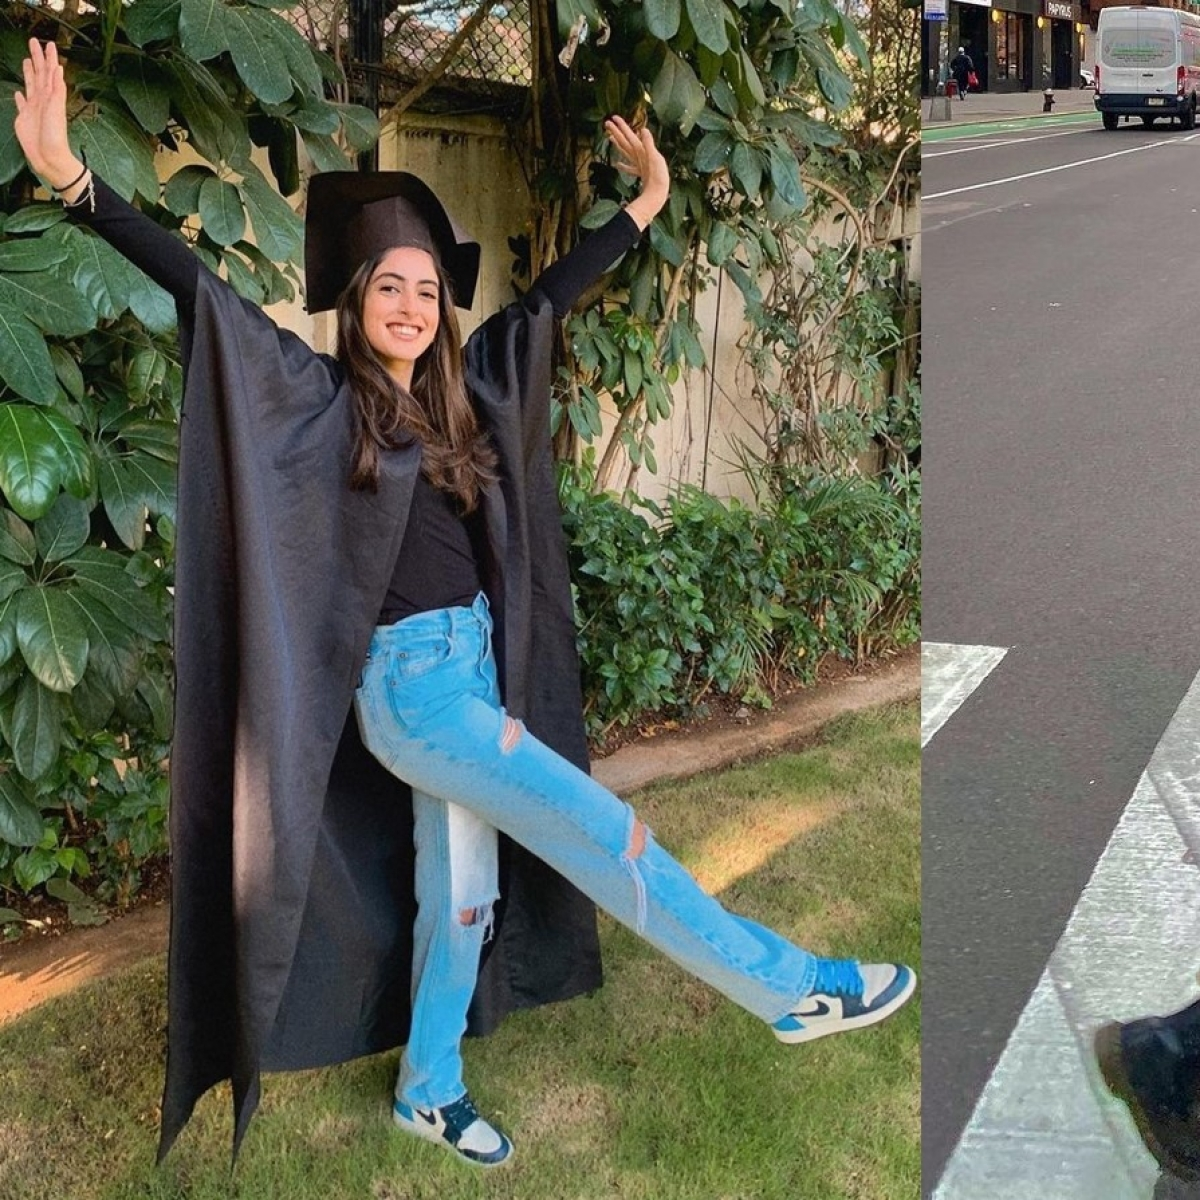 'Change your mentality': Navya Naveli Nanda slams Uttarakhand CM's comment on ripped jeans